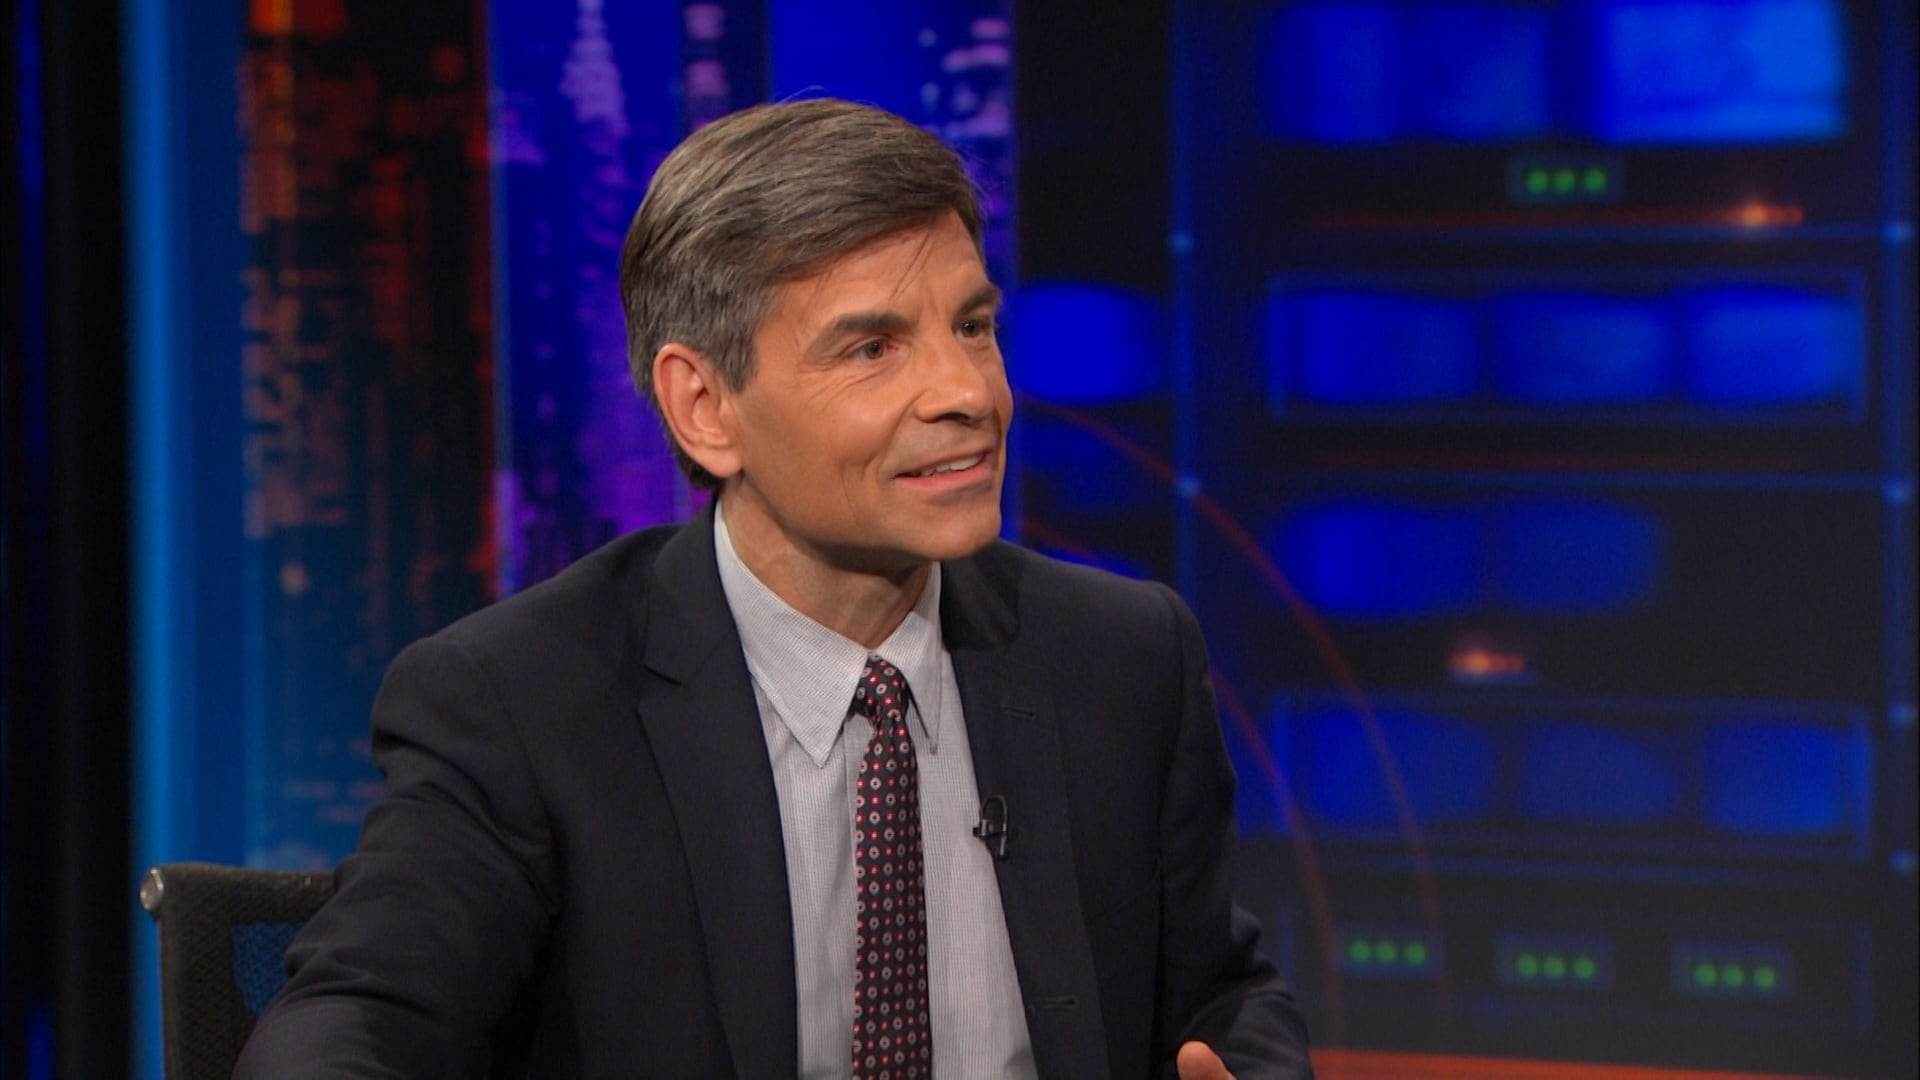 The Daily Show with Trevor Noah Season 20 :Episode 97  George Stephanopoulos